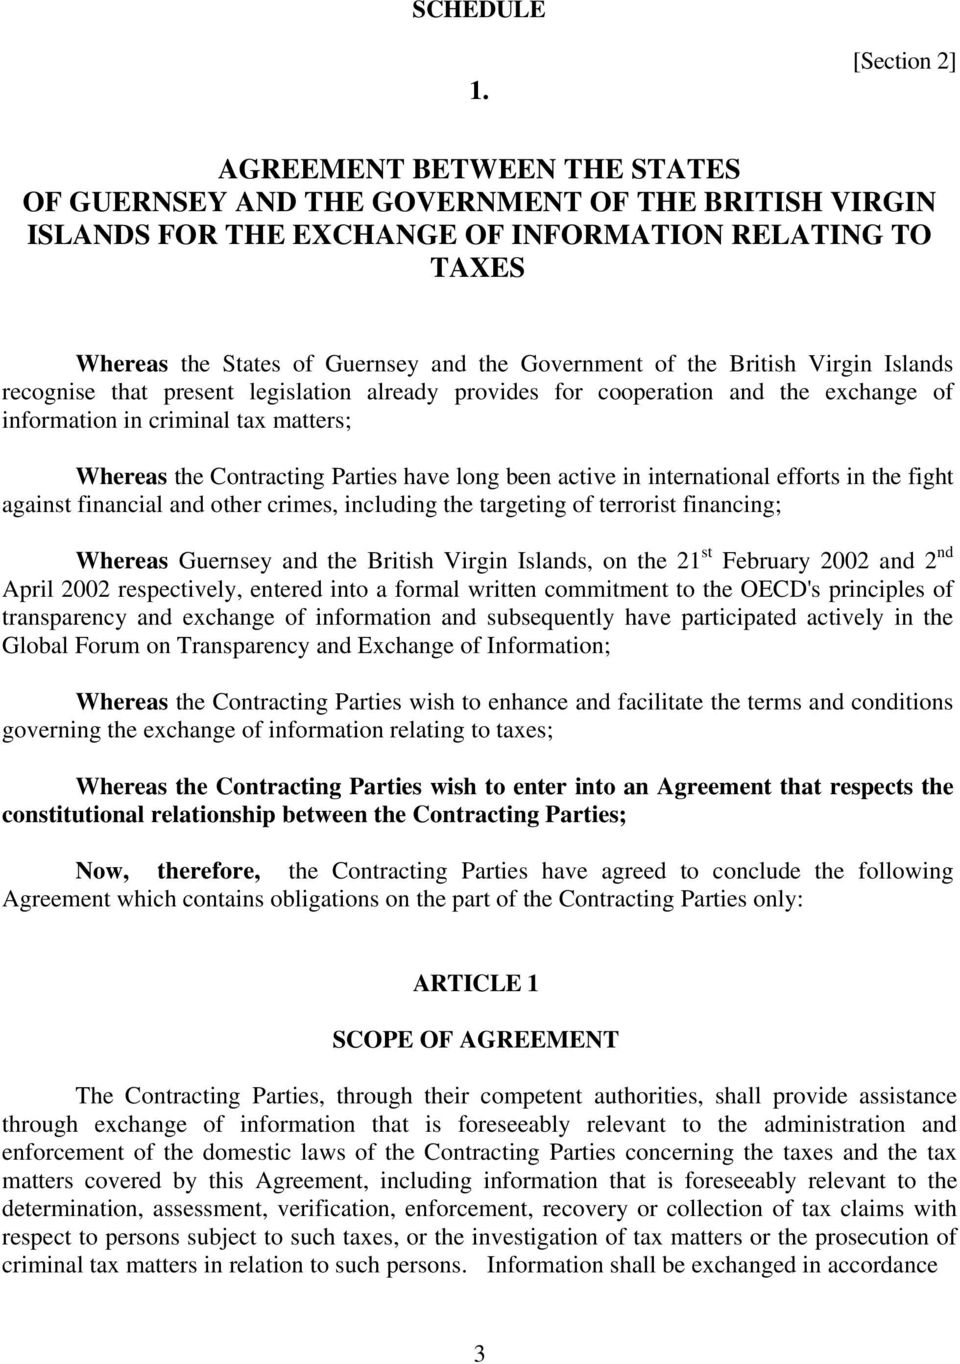 Government of the British Virgin Islands recognise that present legislation already provides for cooperation and the exchange of information in criminal tax matters; Whereas the Contracting Parties